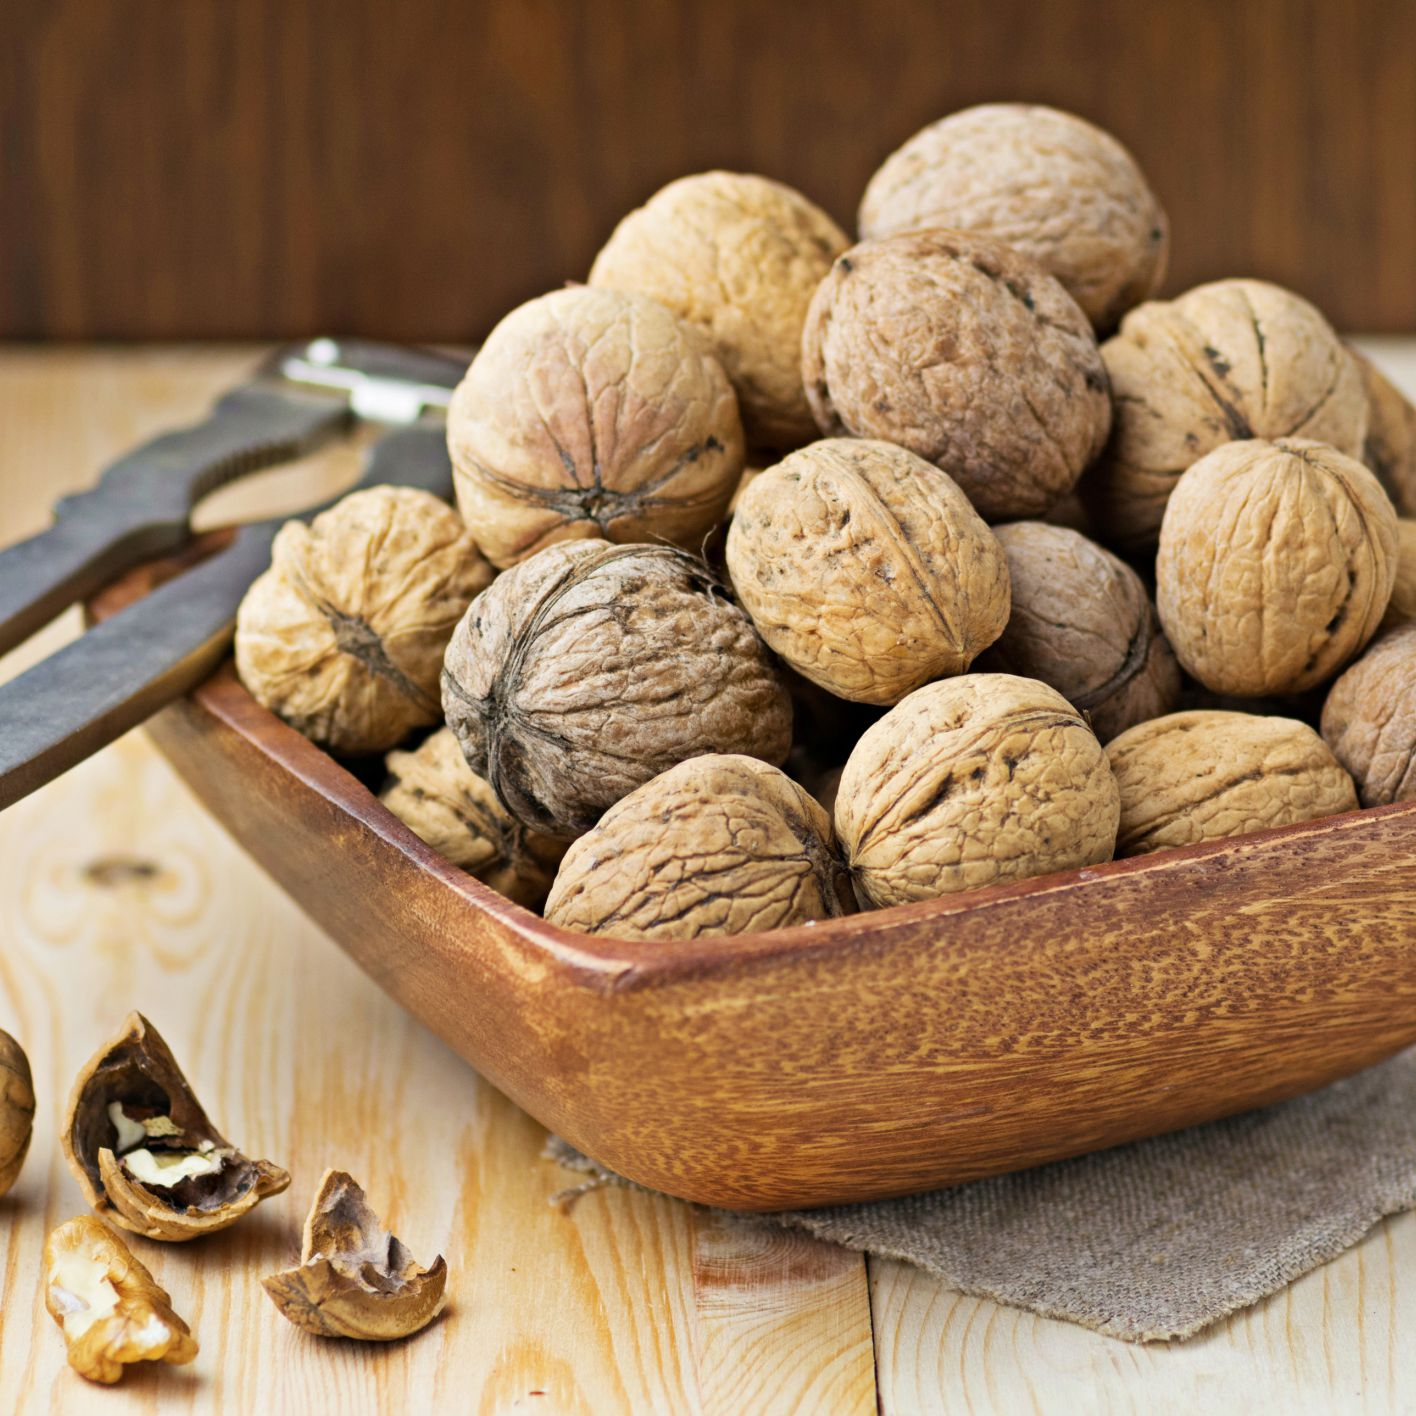 How Eating Walnuts Can Help Your Heart and Diabetes